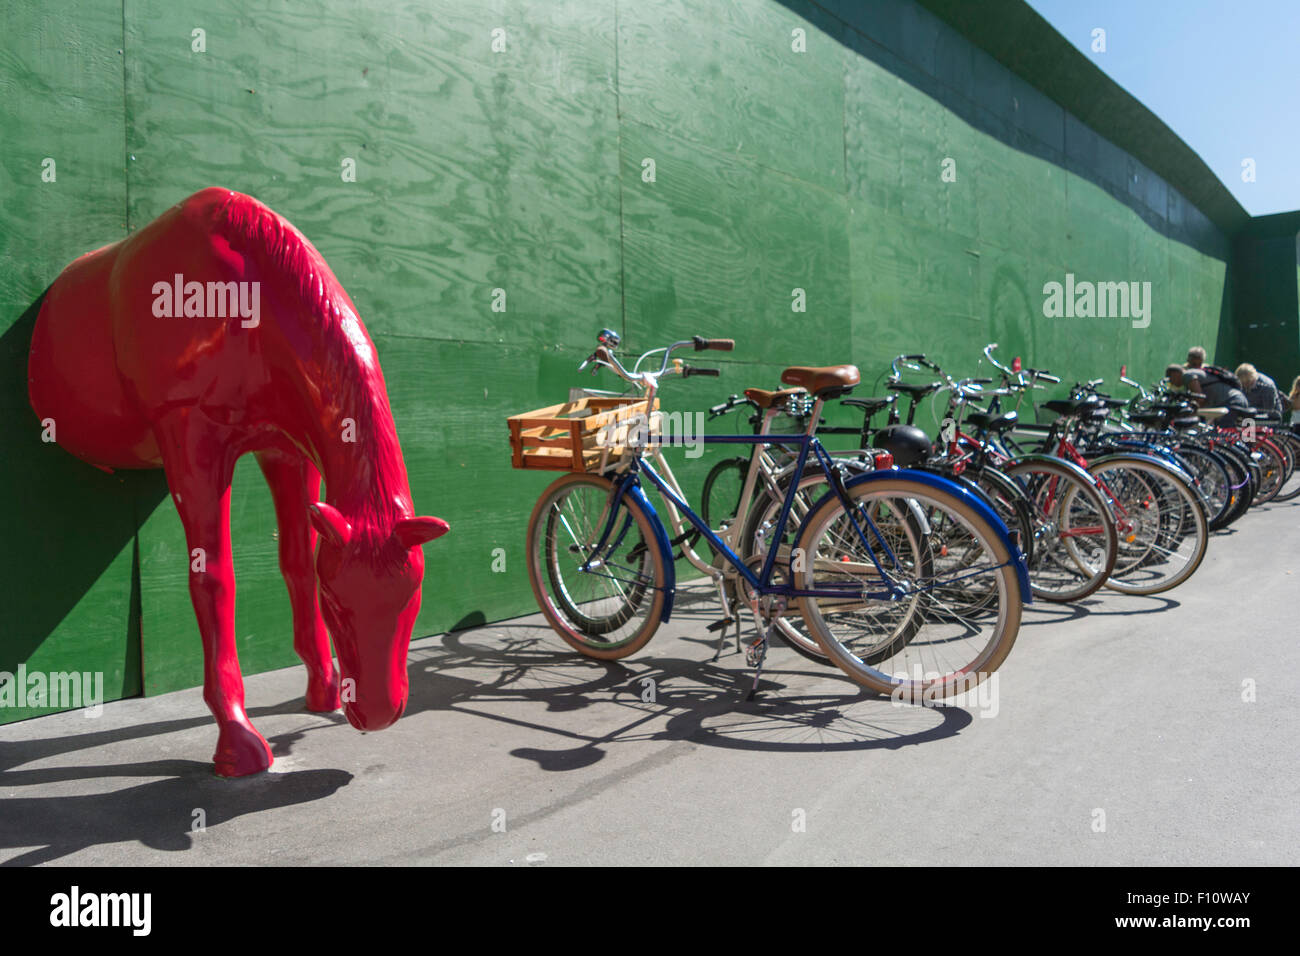 Half of a red horse juts out from green boarding adjacent to a rack of bicycles in Copenhagen, Denmark Stock Photo